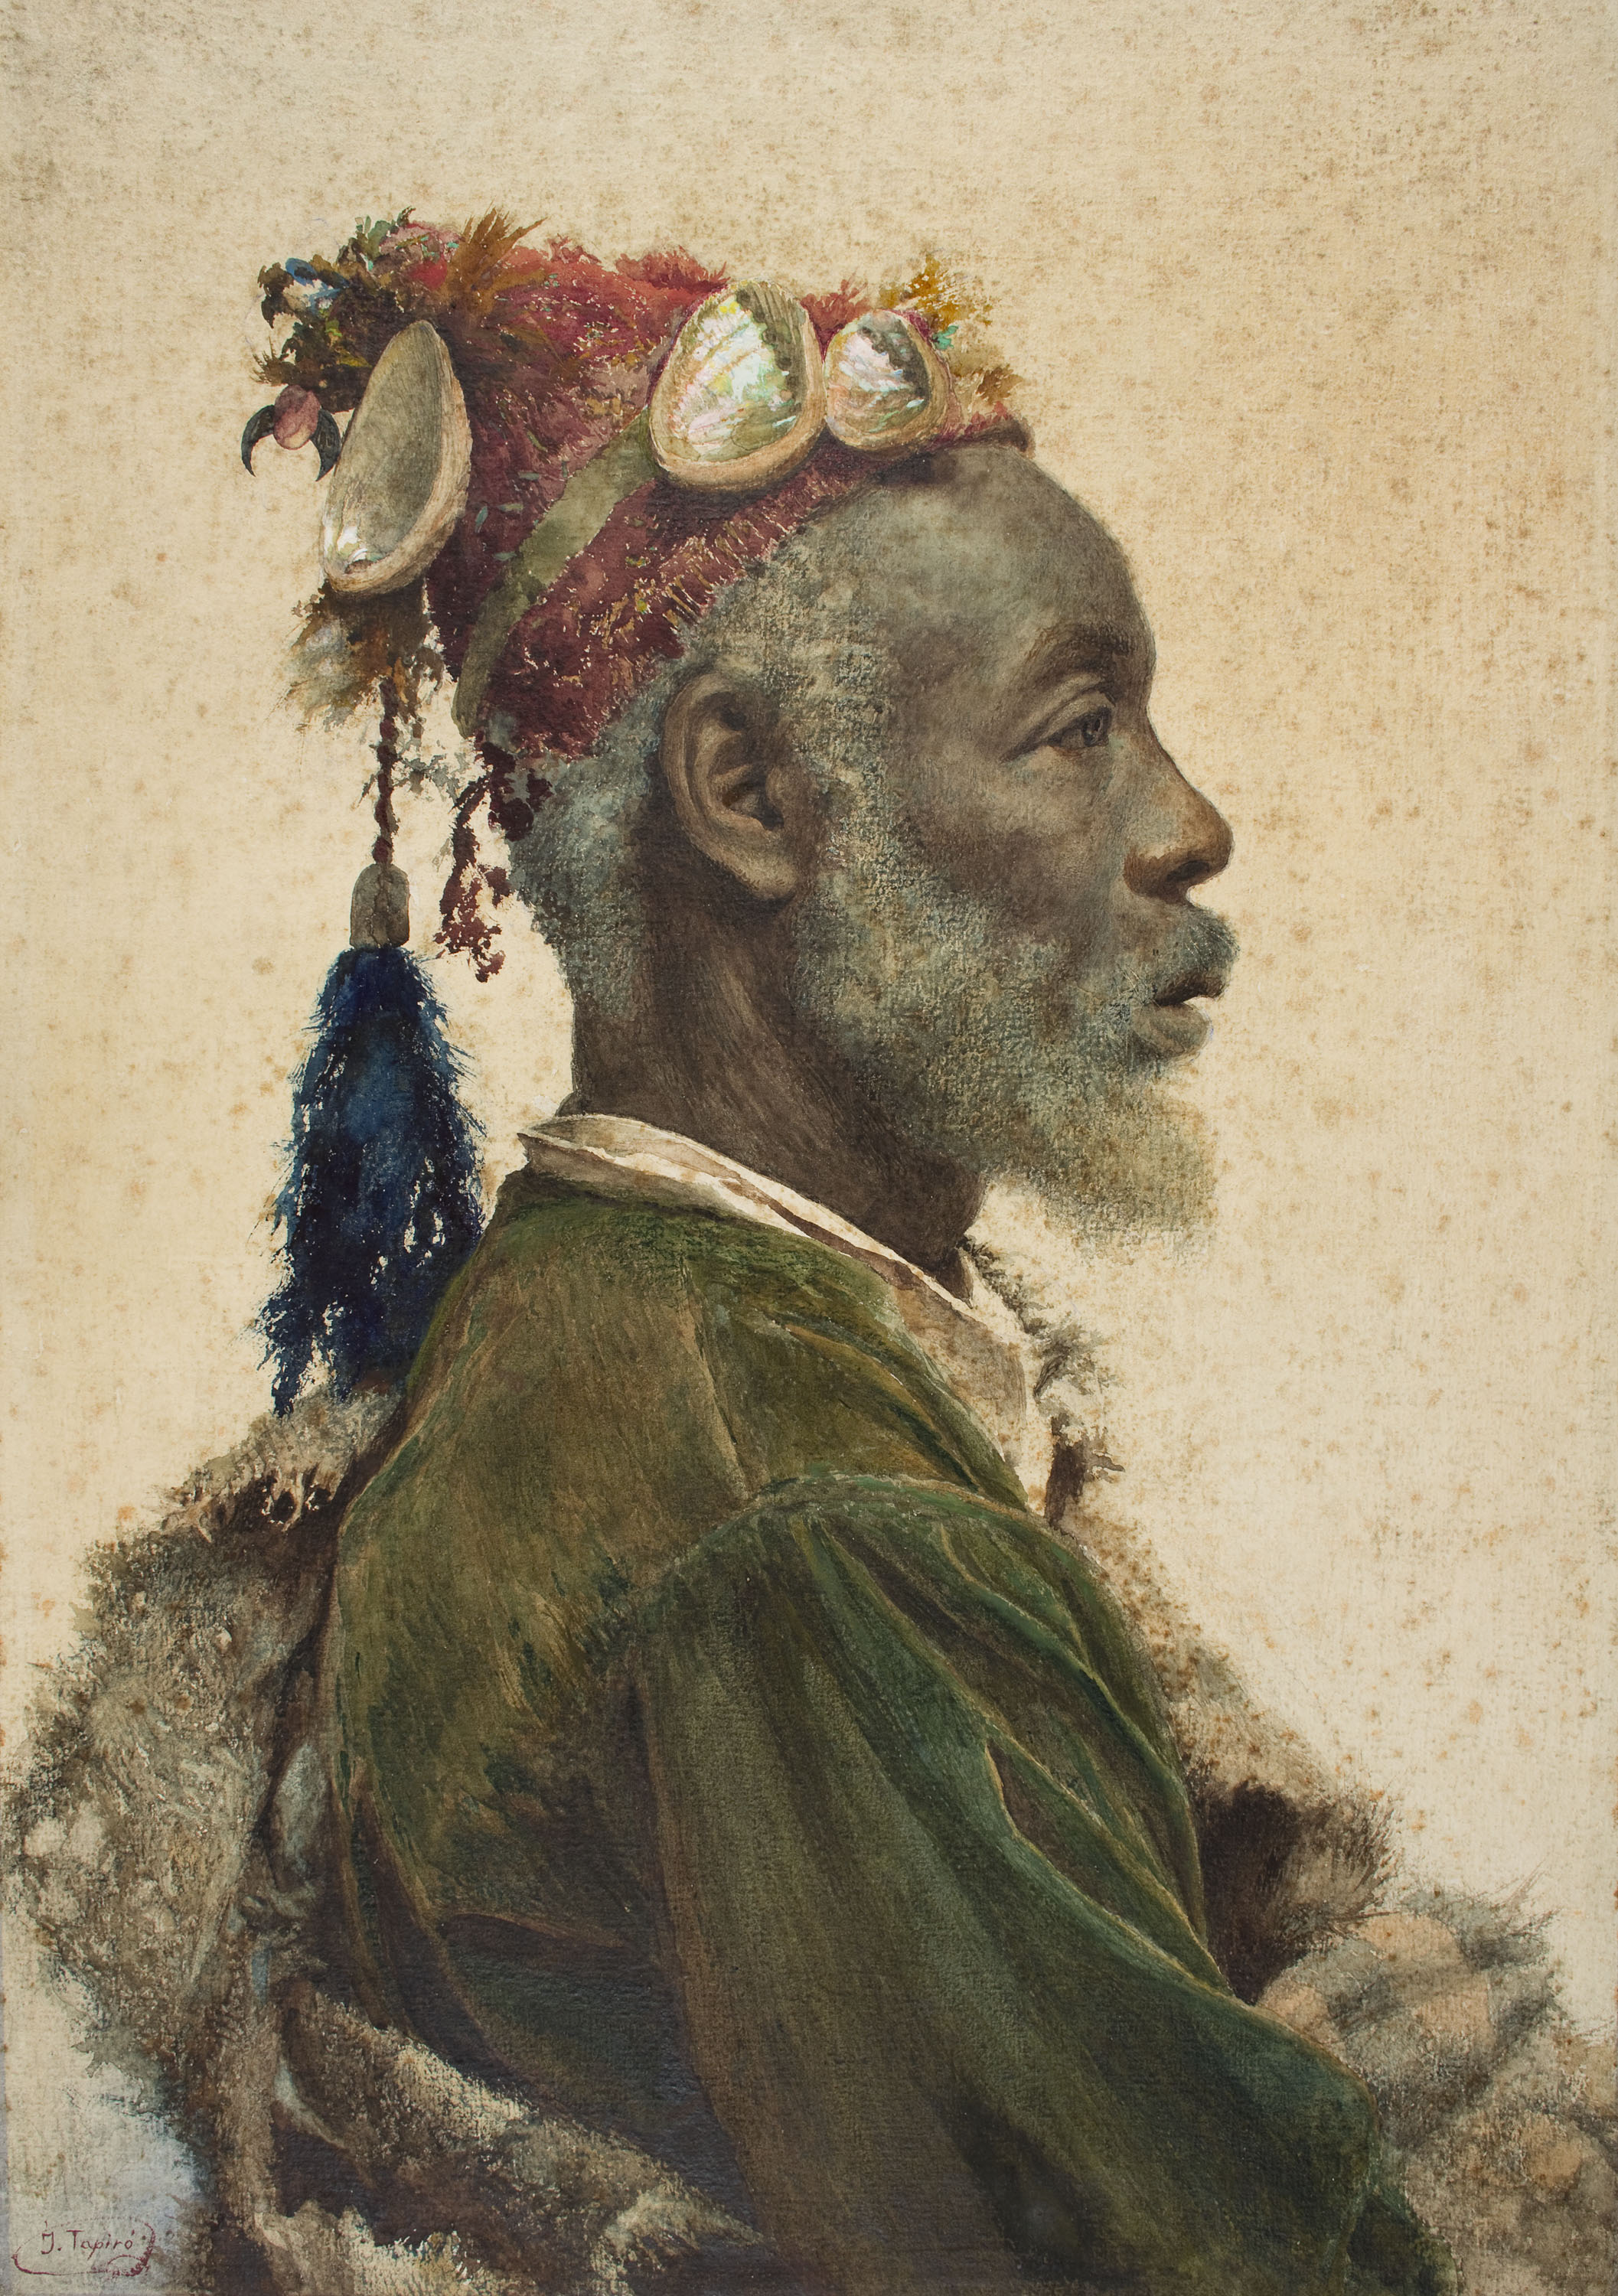 Josep Tapiró - The Darcawi Holy Man from Marrakesh - Circa 1890-1900